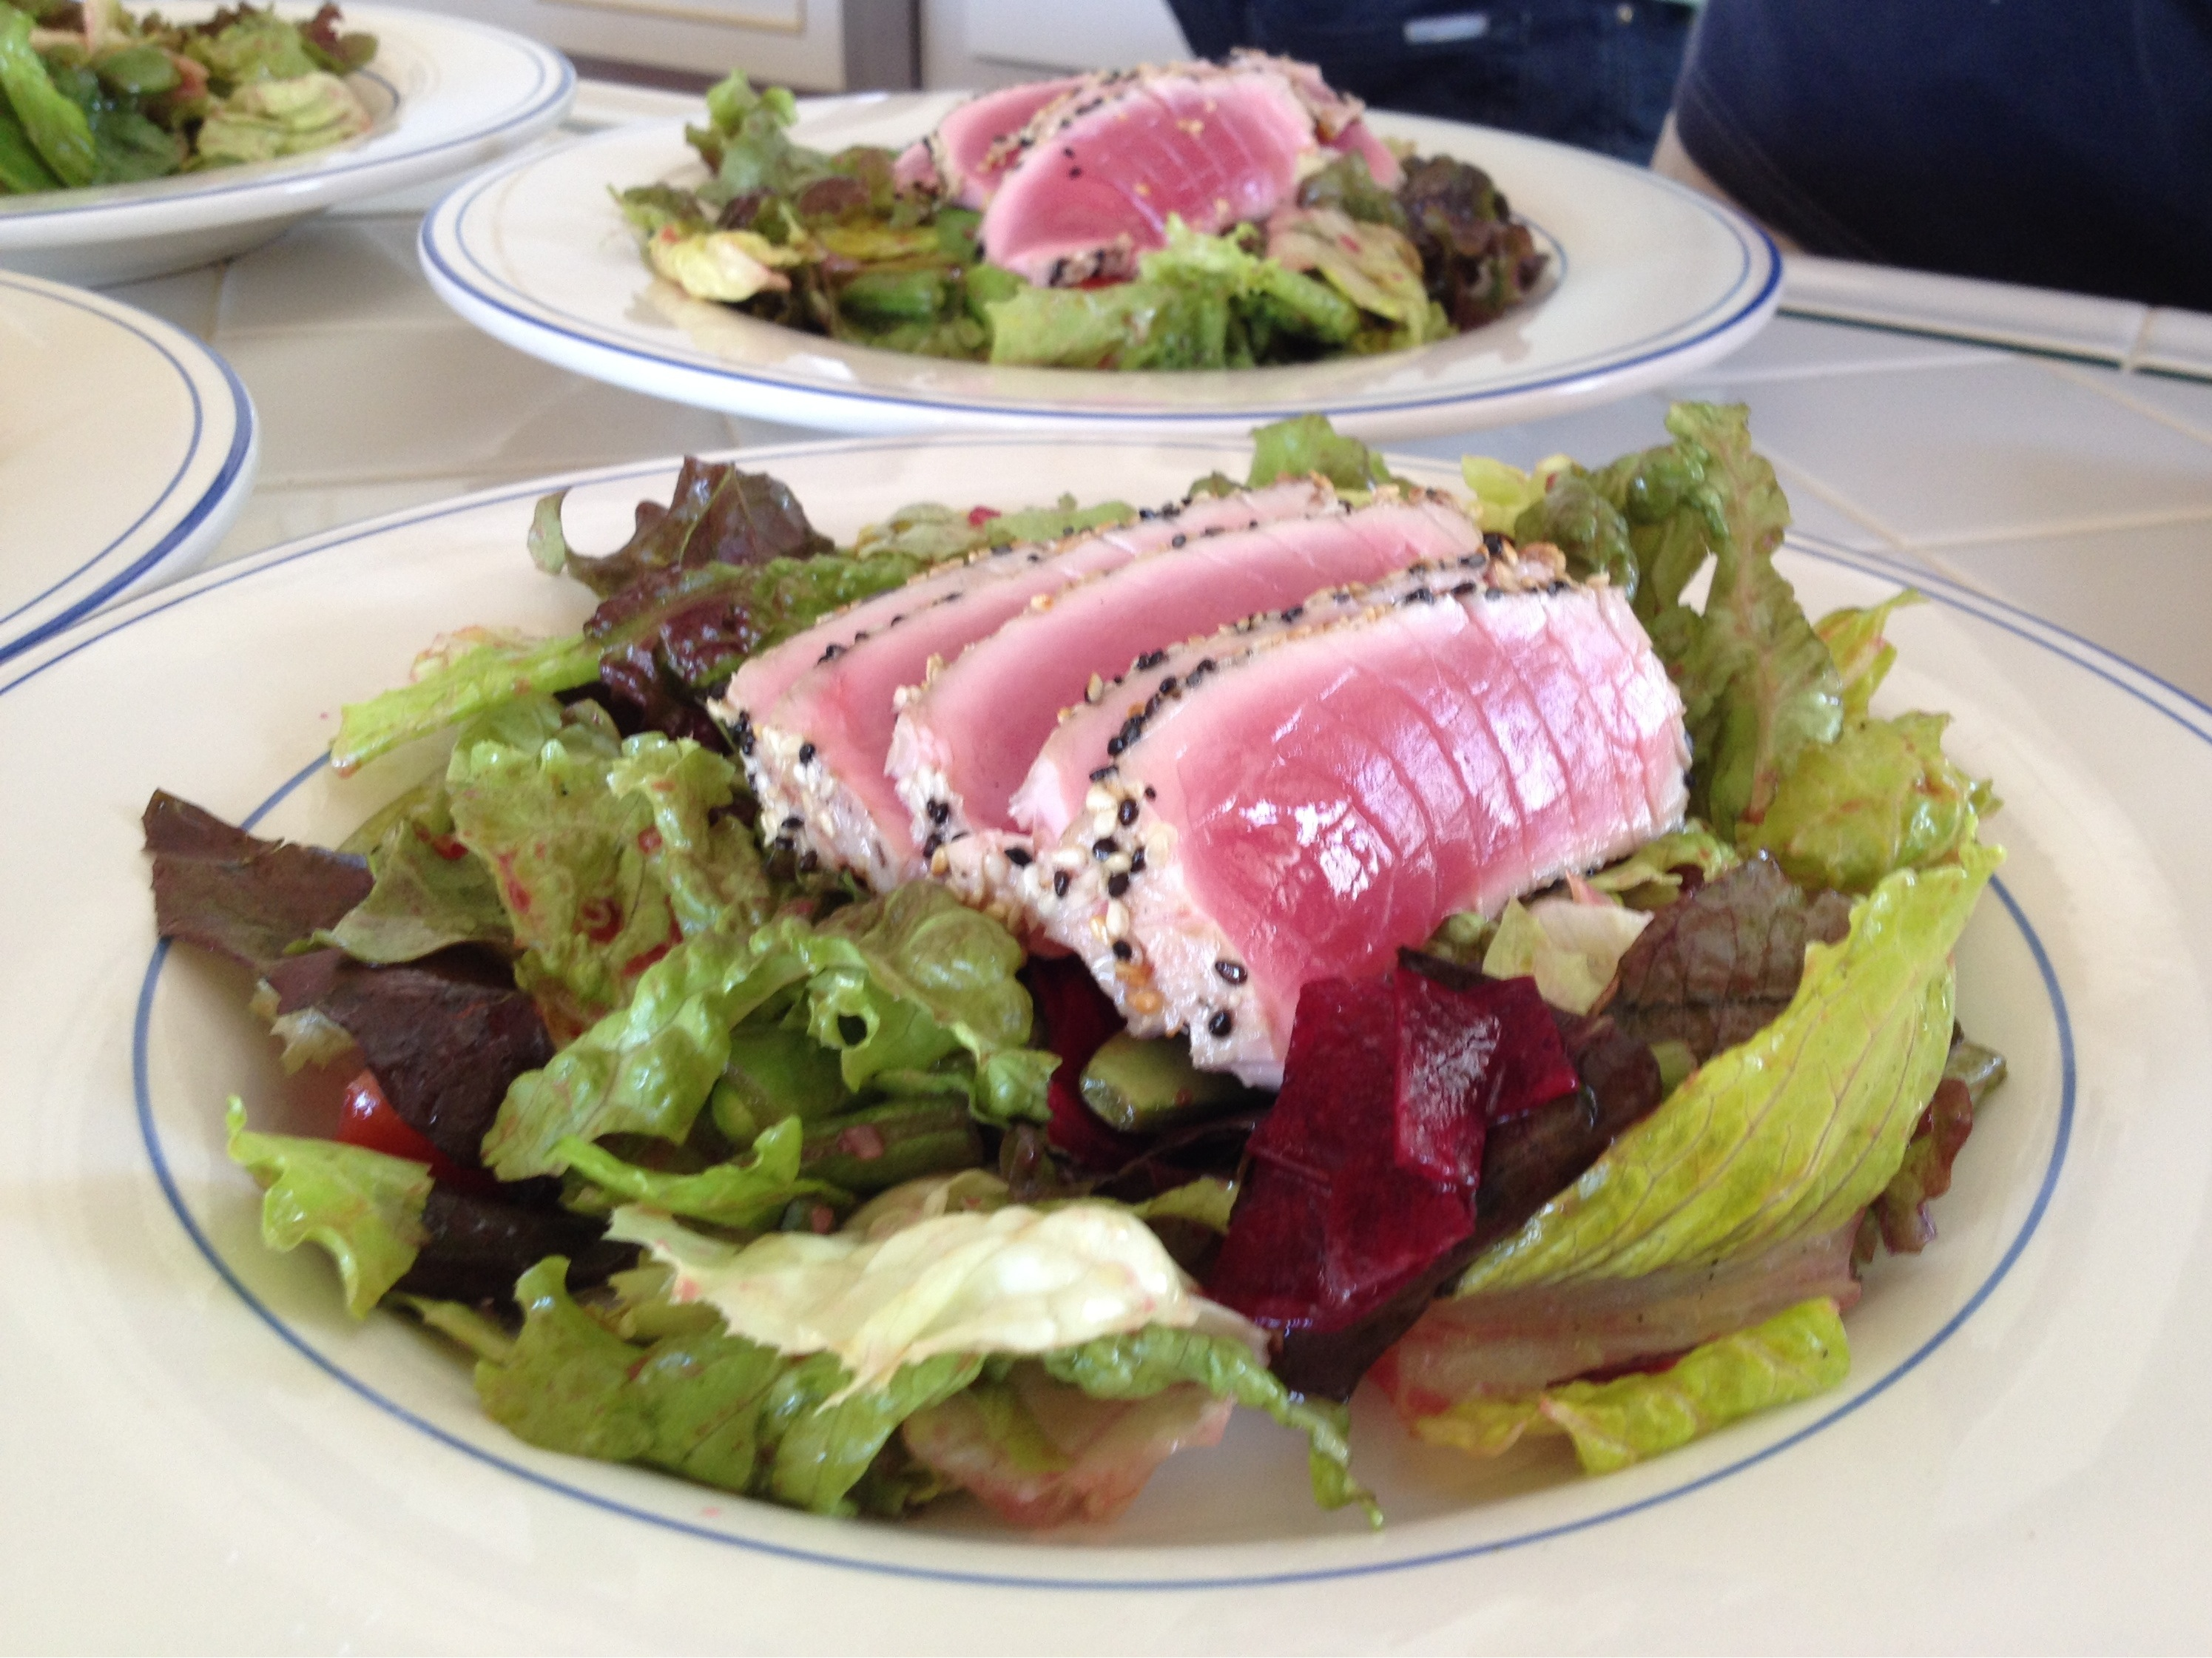 seared sesame crusted tuna on a bed of lettuce with raw beets and sugar snap peas